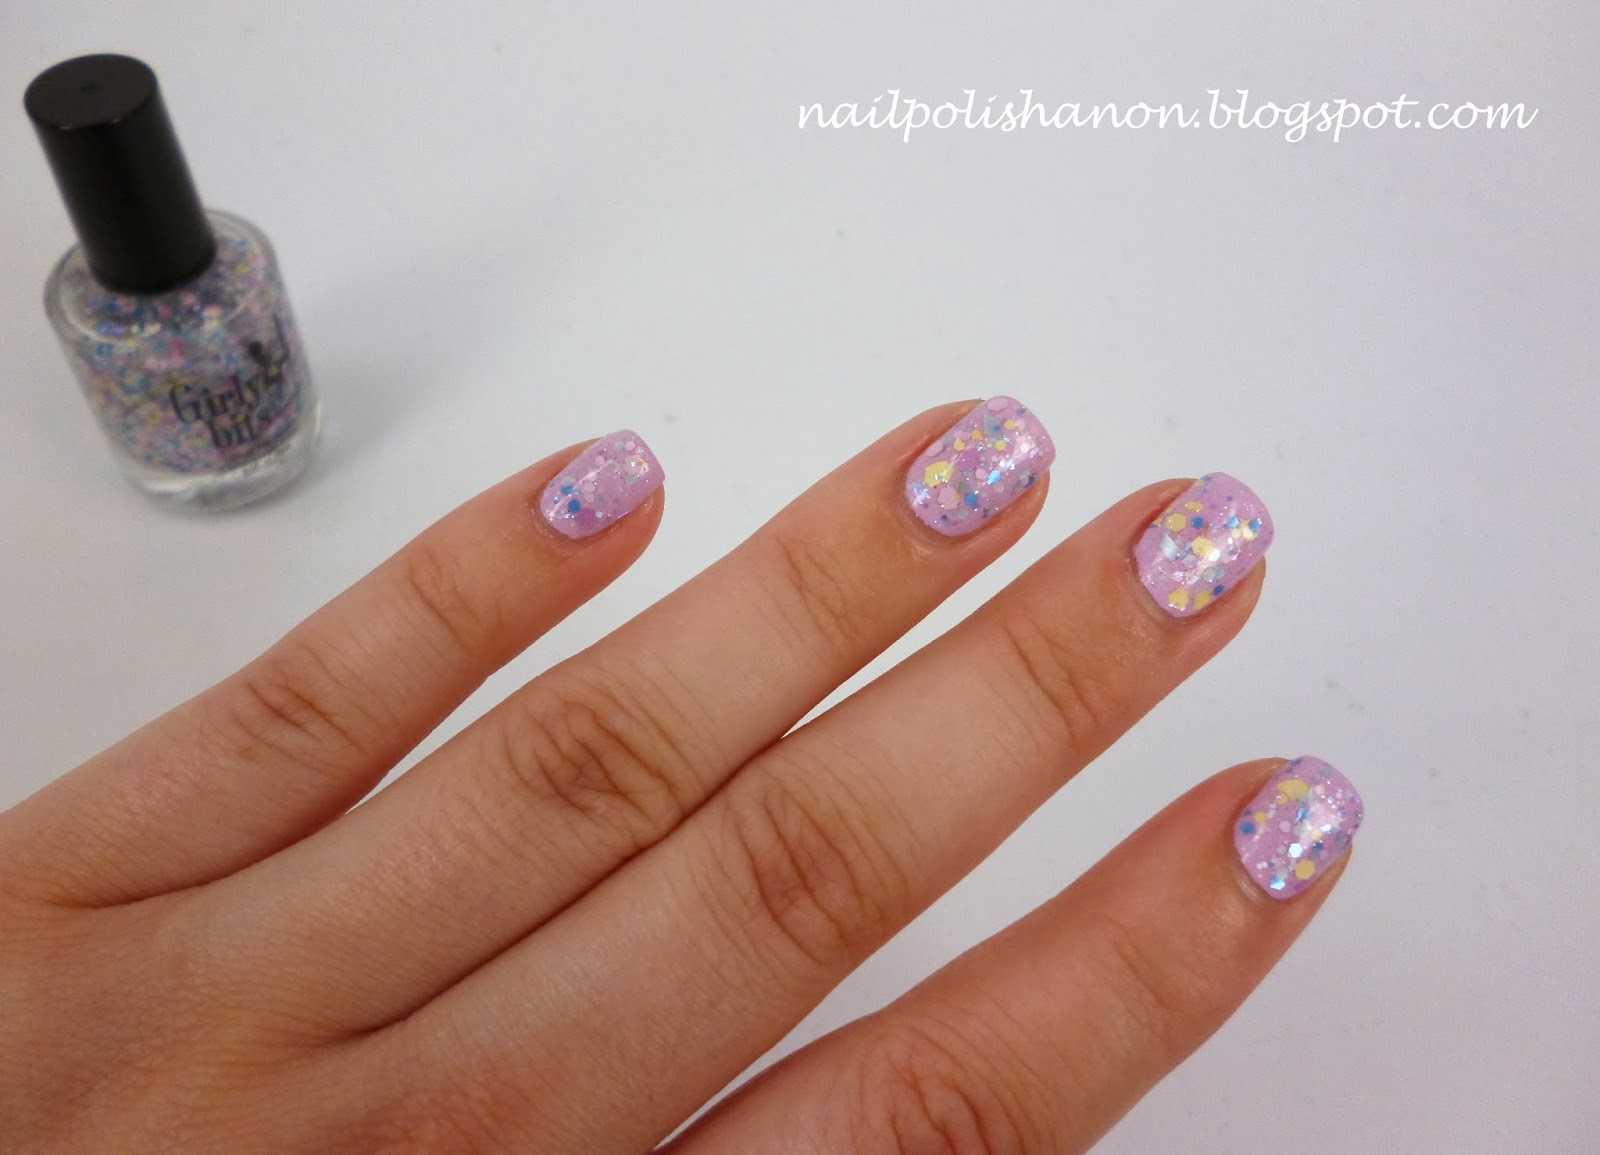 Nail Polish Anon: Even More Girly Bits Swatches